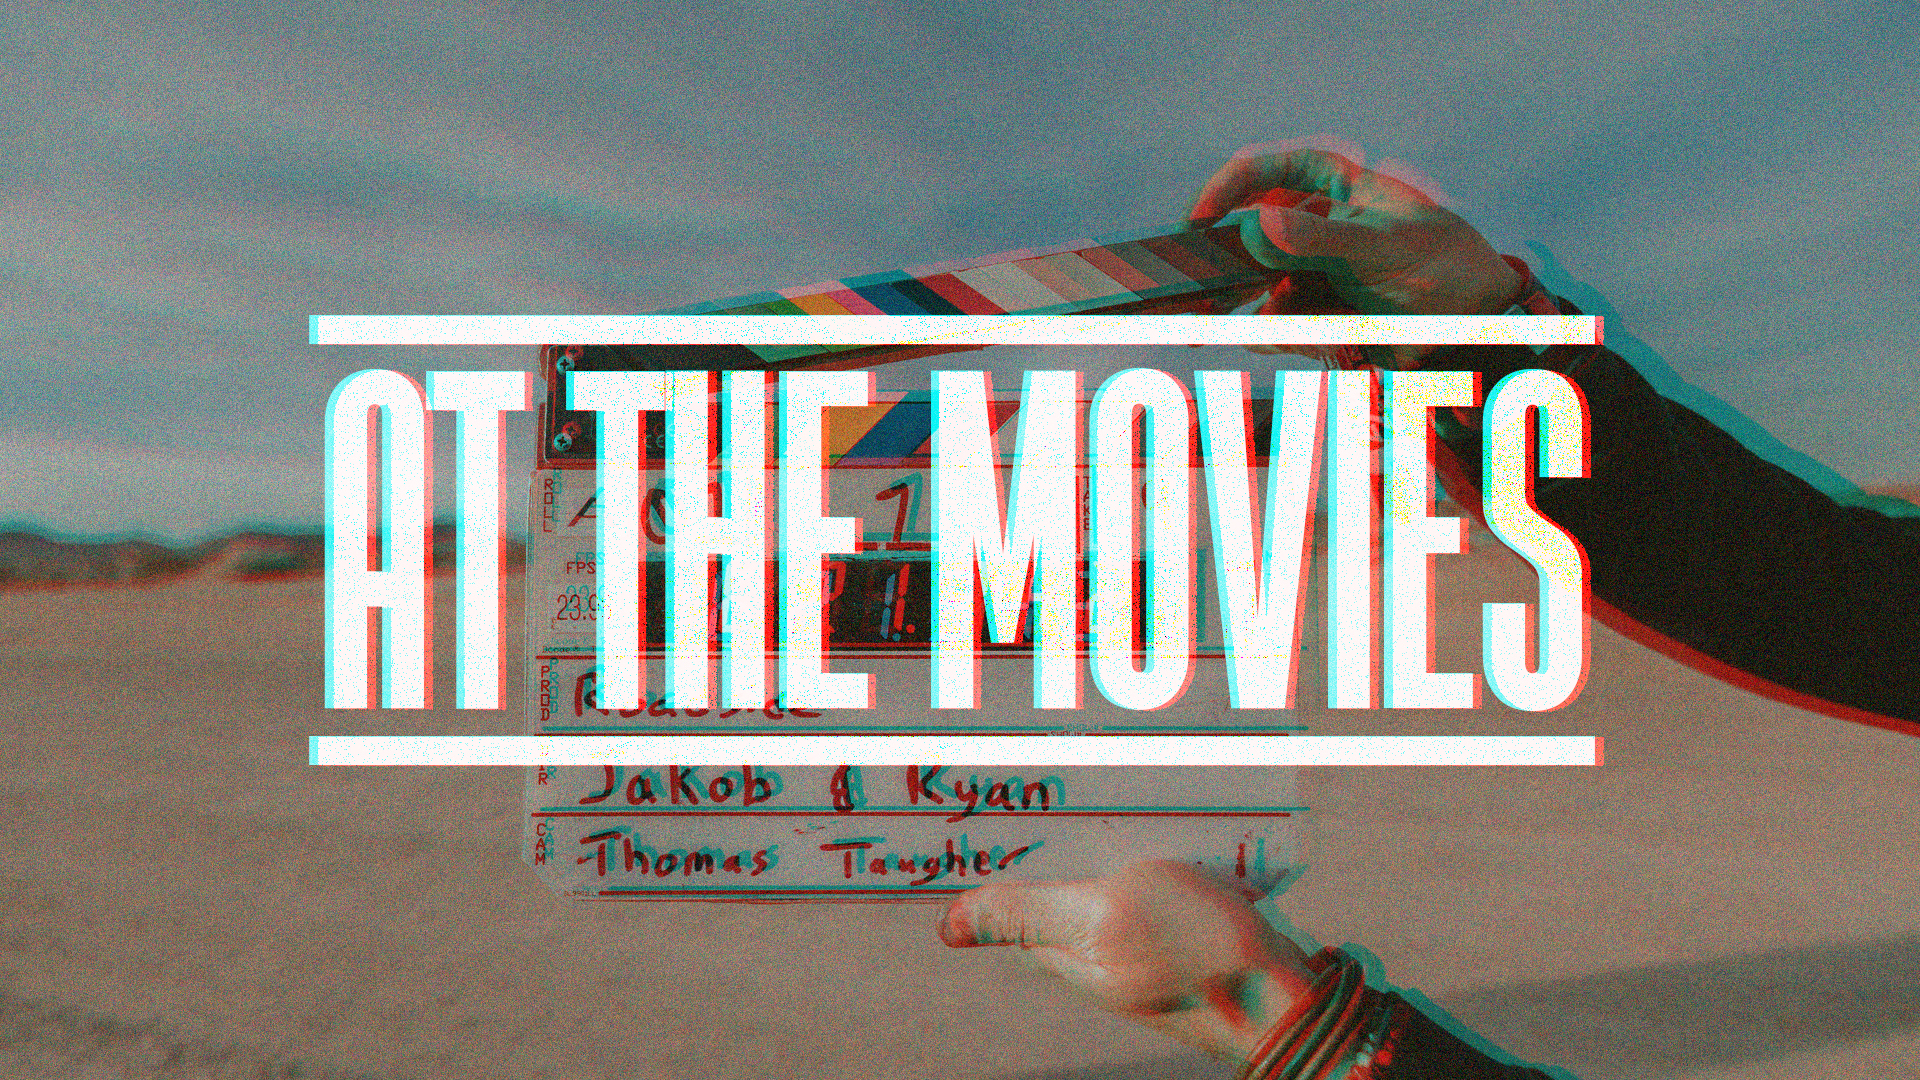 At The Movies Graphic 2019.jpg